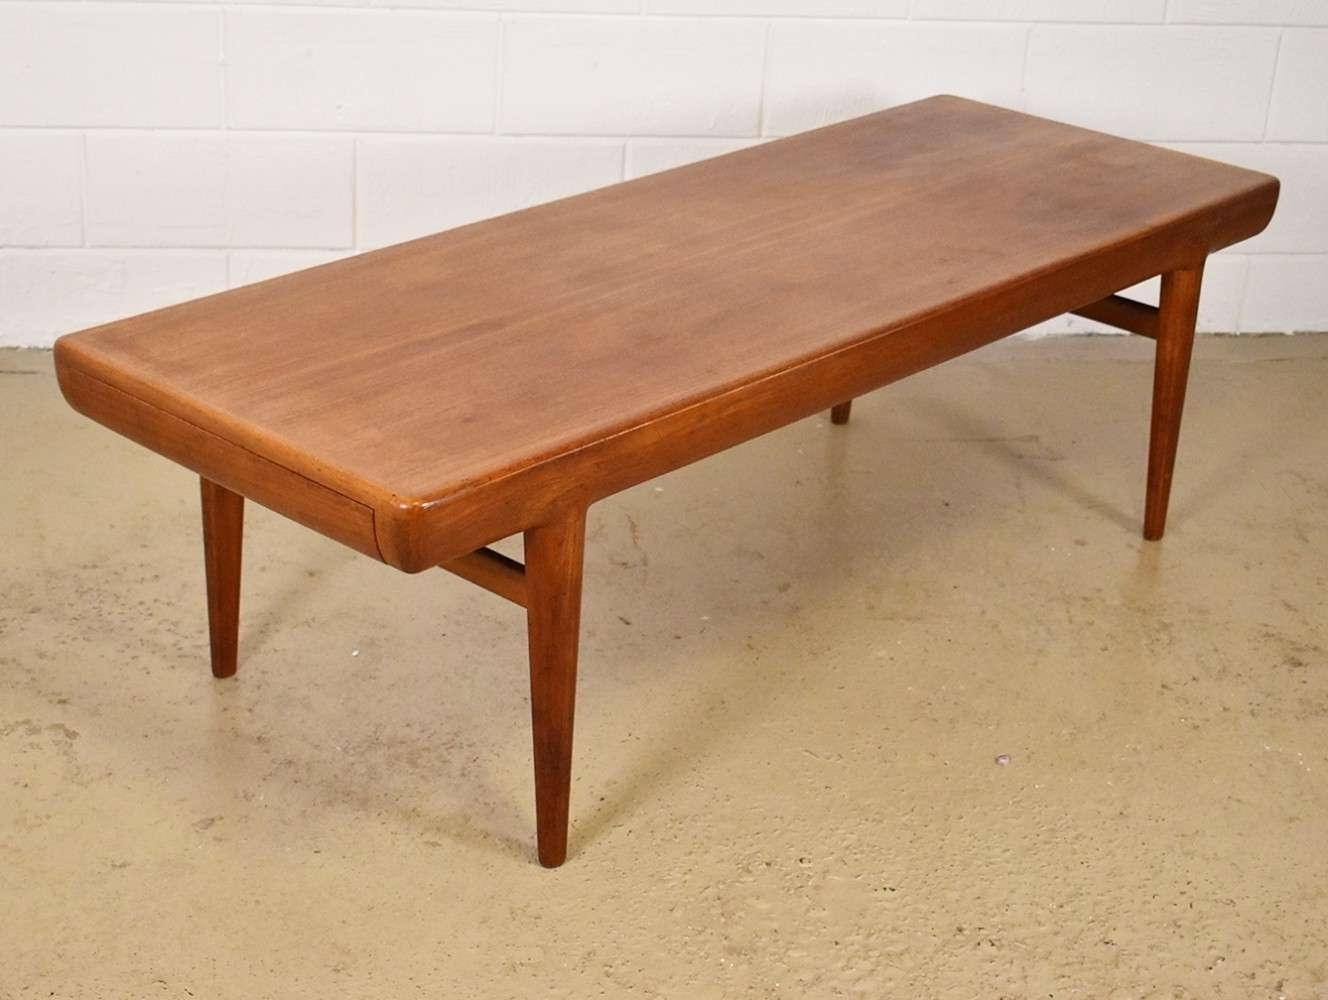 Latest Very Large Coffee Tables Pertaining To Coffee Tables : Appealing Extra Long Coffee Table Very Large (View 9 of 20)